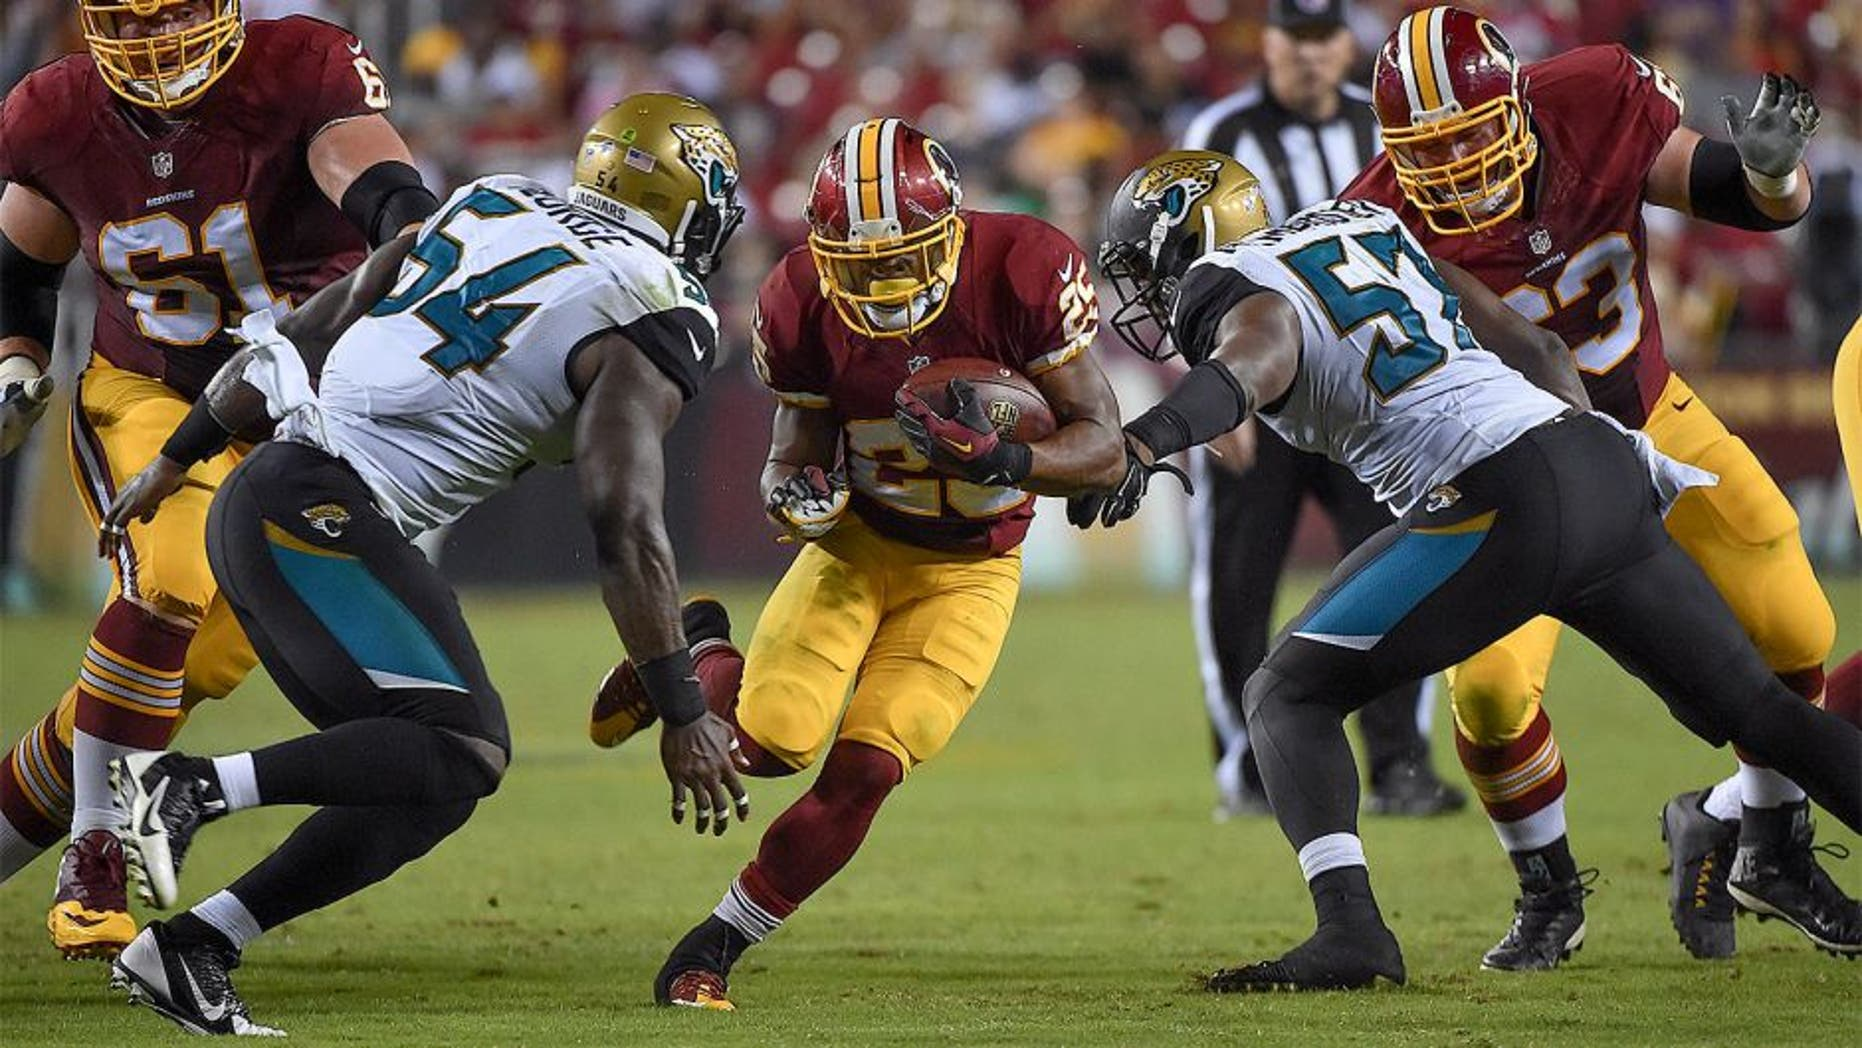 LANDOVER, MD - SEPTEMBER 3: Washington Redskins running back Chris Thompson (25) carries the ball for yardage during the fourth quarter in a NFL preseason game between the Washington Redskins and Jacksonville Jaguars at FedEx Field on September 3, 2015 in Landover, Md. (Photo by Ricky Carioti/The Washington Post via Getty Images)